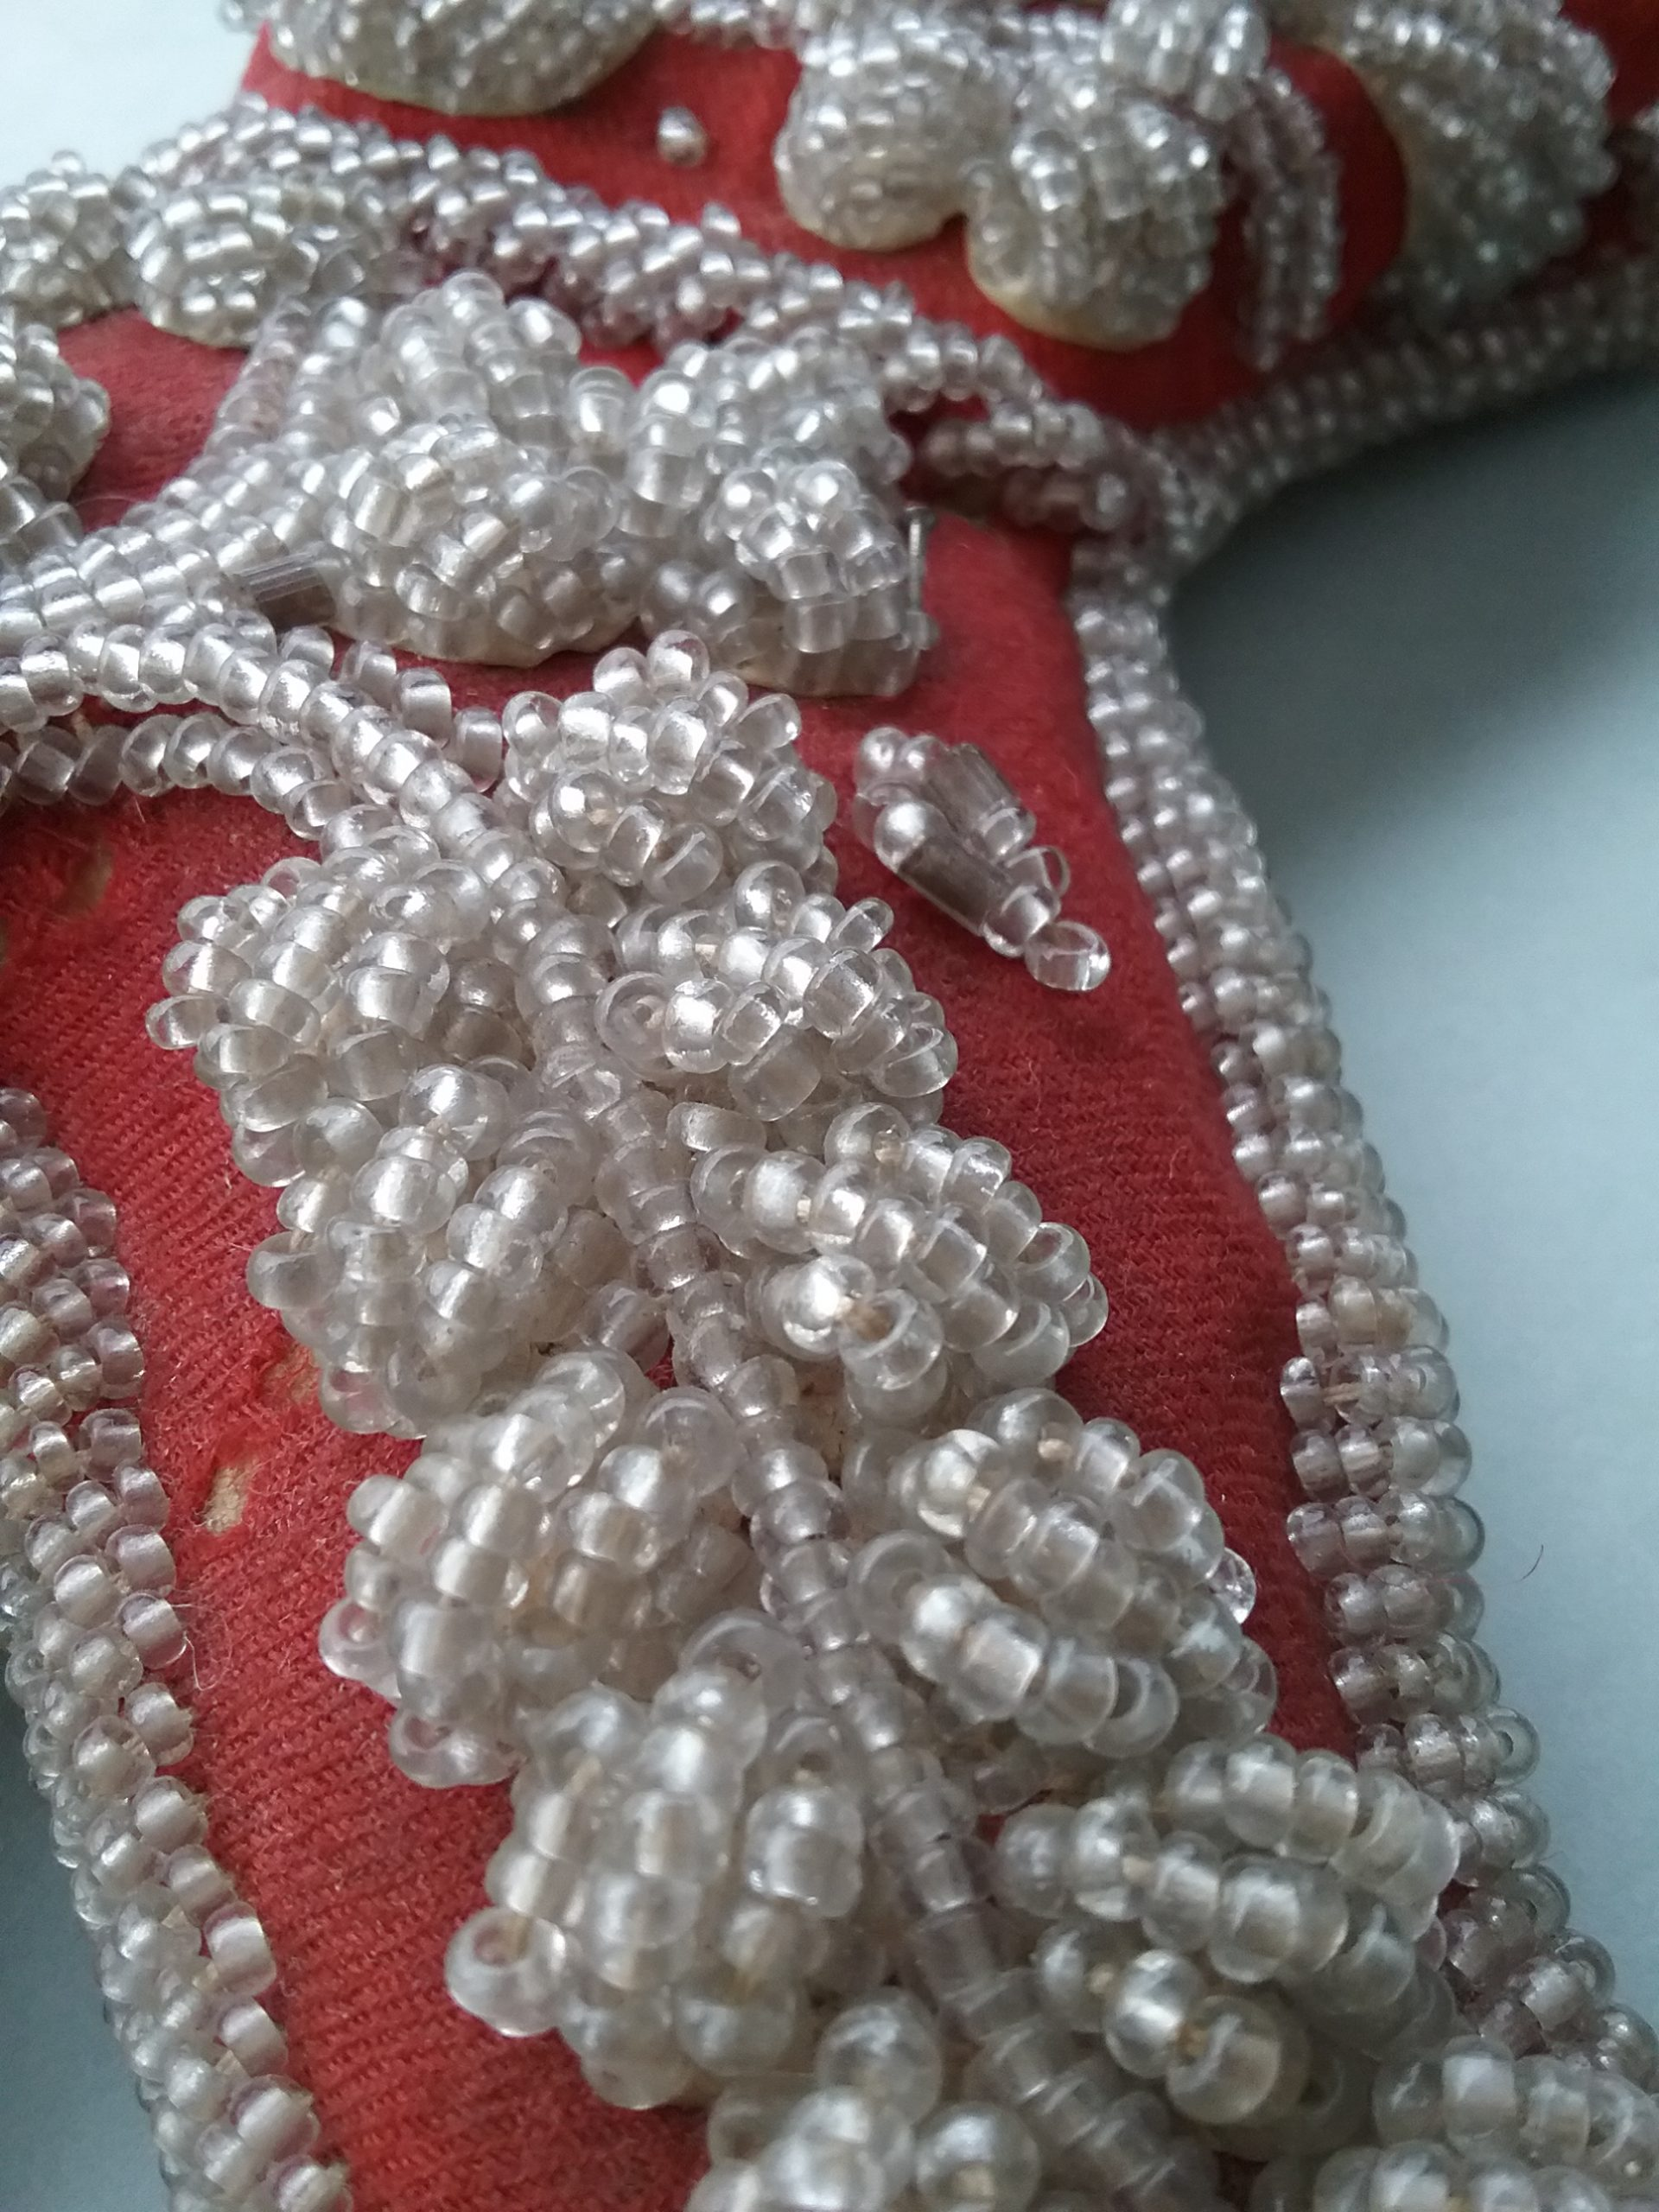 Detail on Small Red Beaded Shoe. MCHS collections, #1971.10.103.